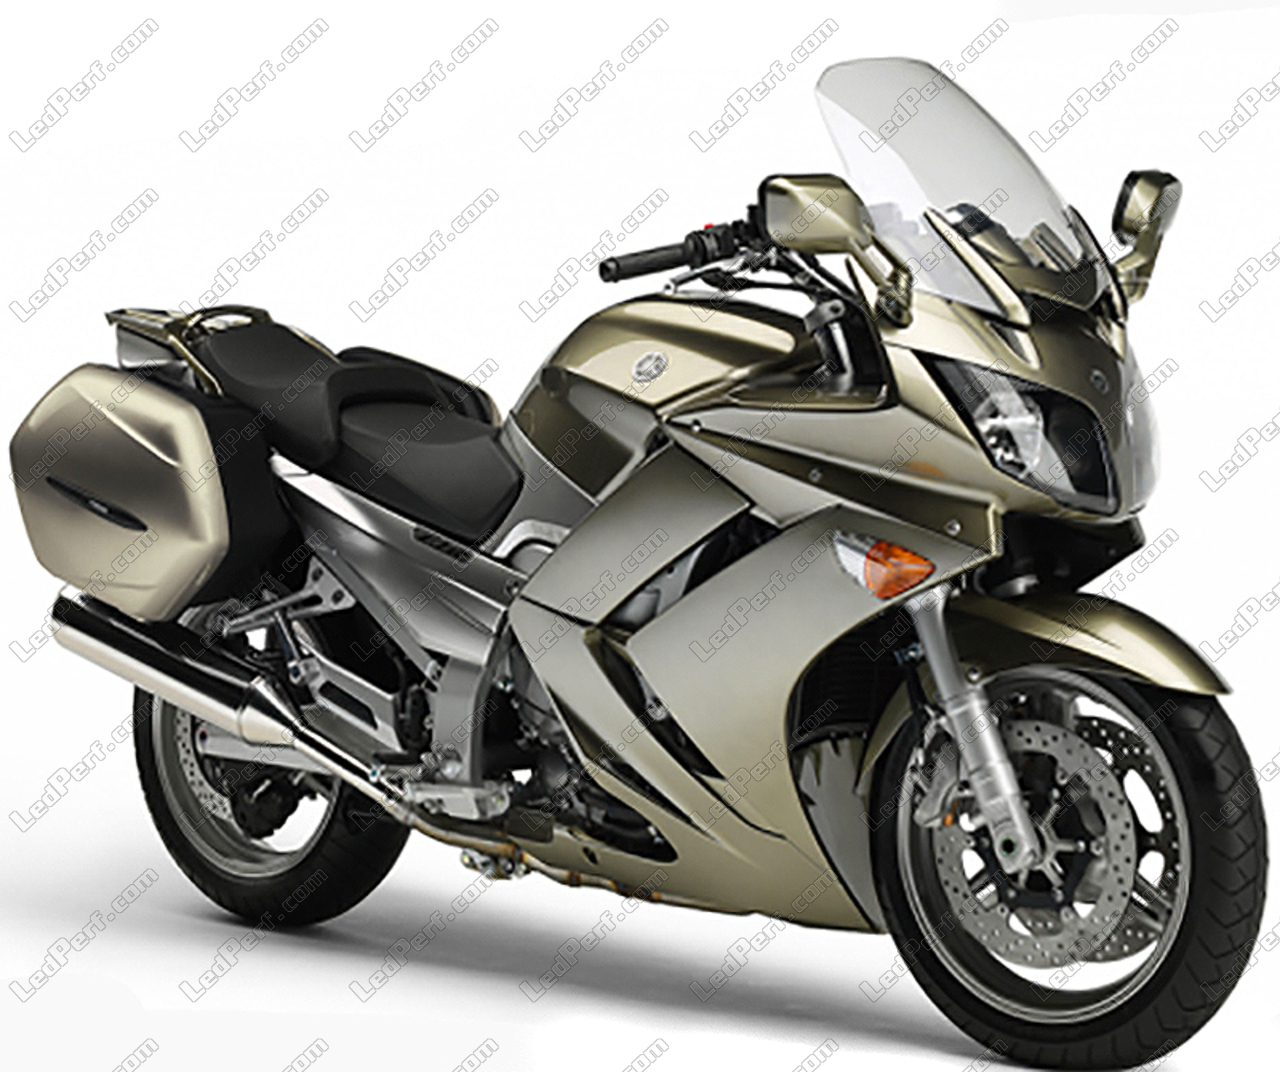 pack led license plate for yamaha fjr 1300 mk2. Black Bedroom Furniture Sets. Home Design Ideas